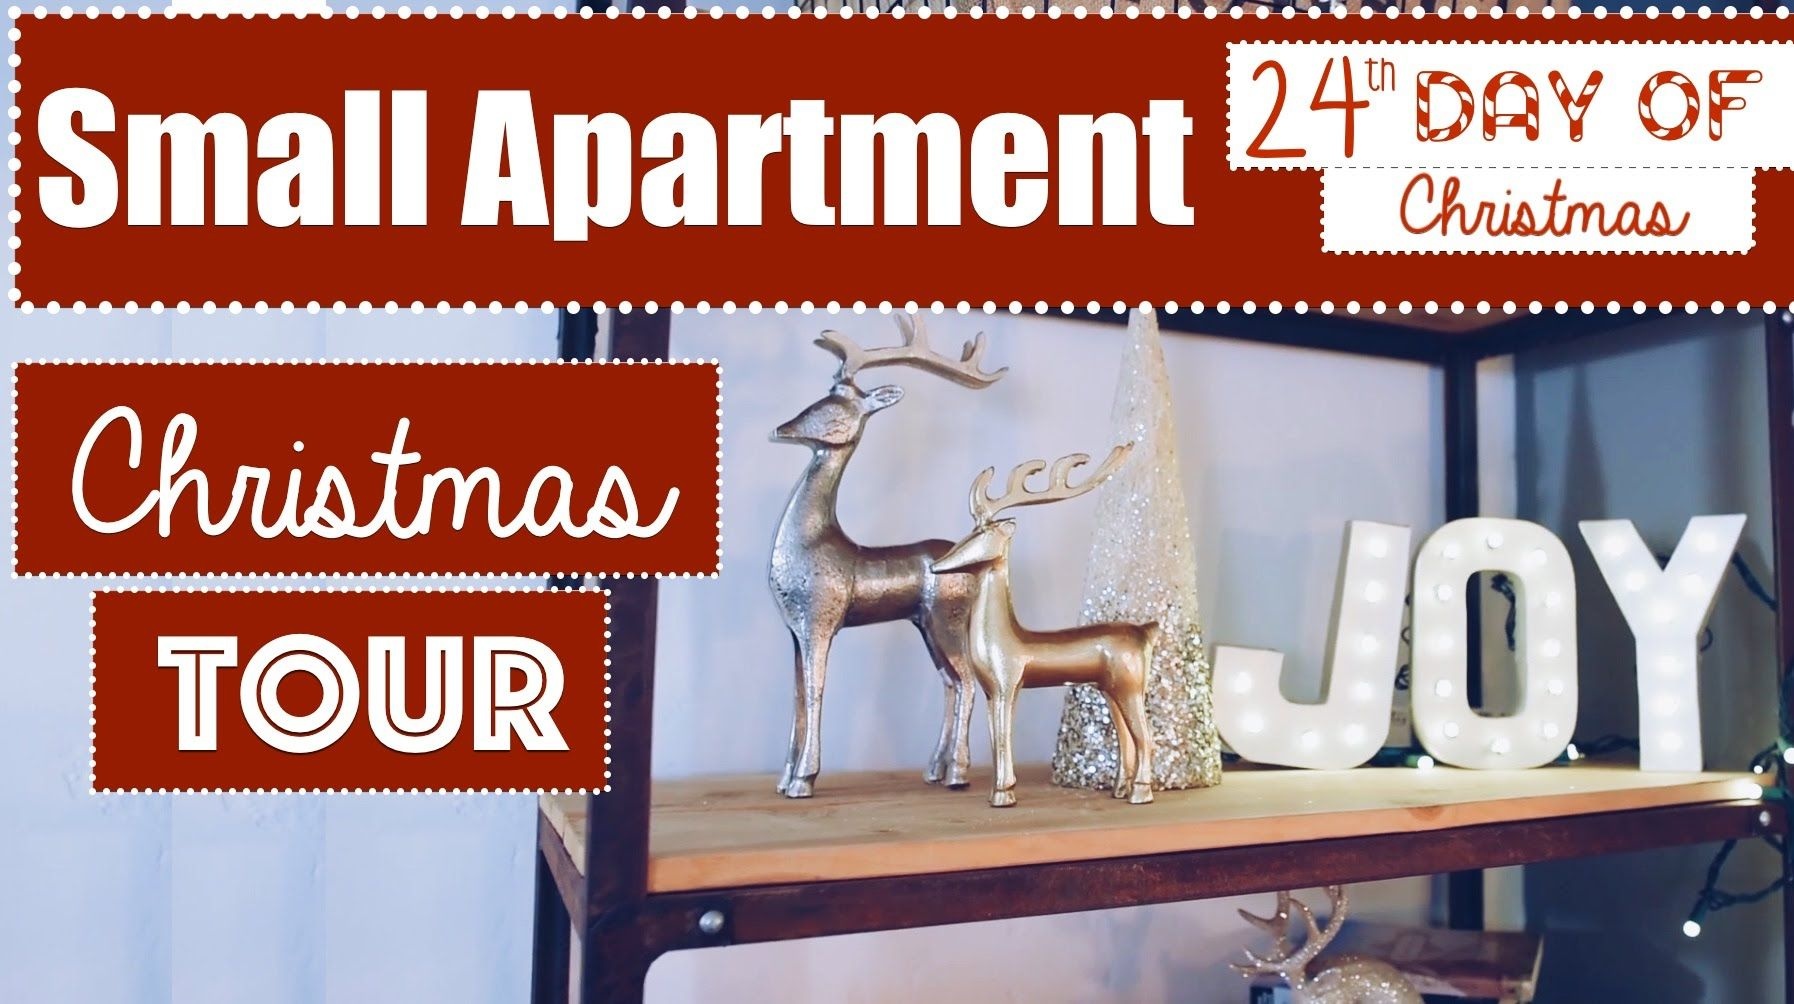 Small Apartment Christmas Decorating Tour!   24th Day of Christmas 2015!